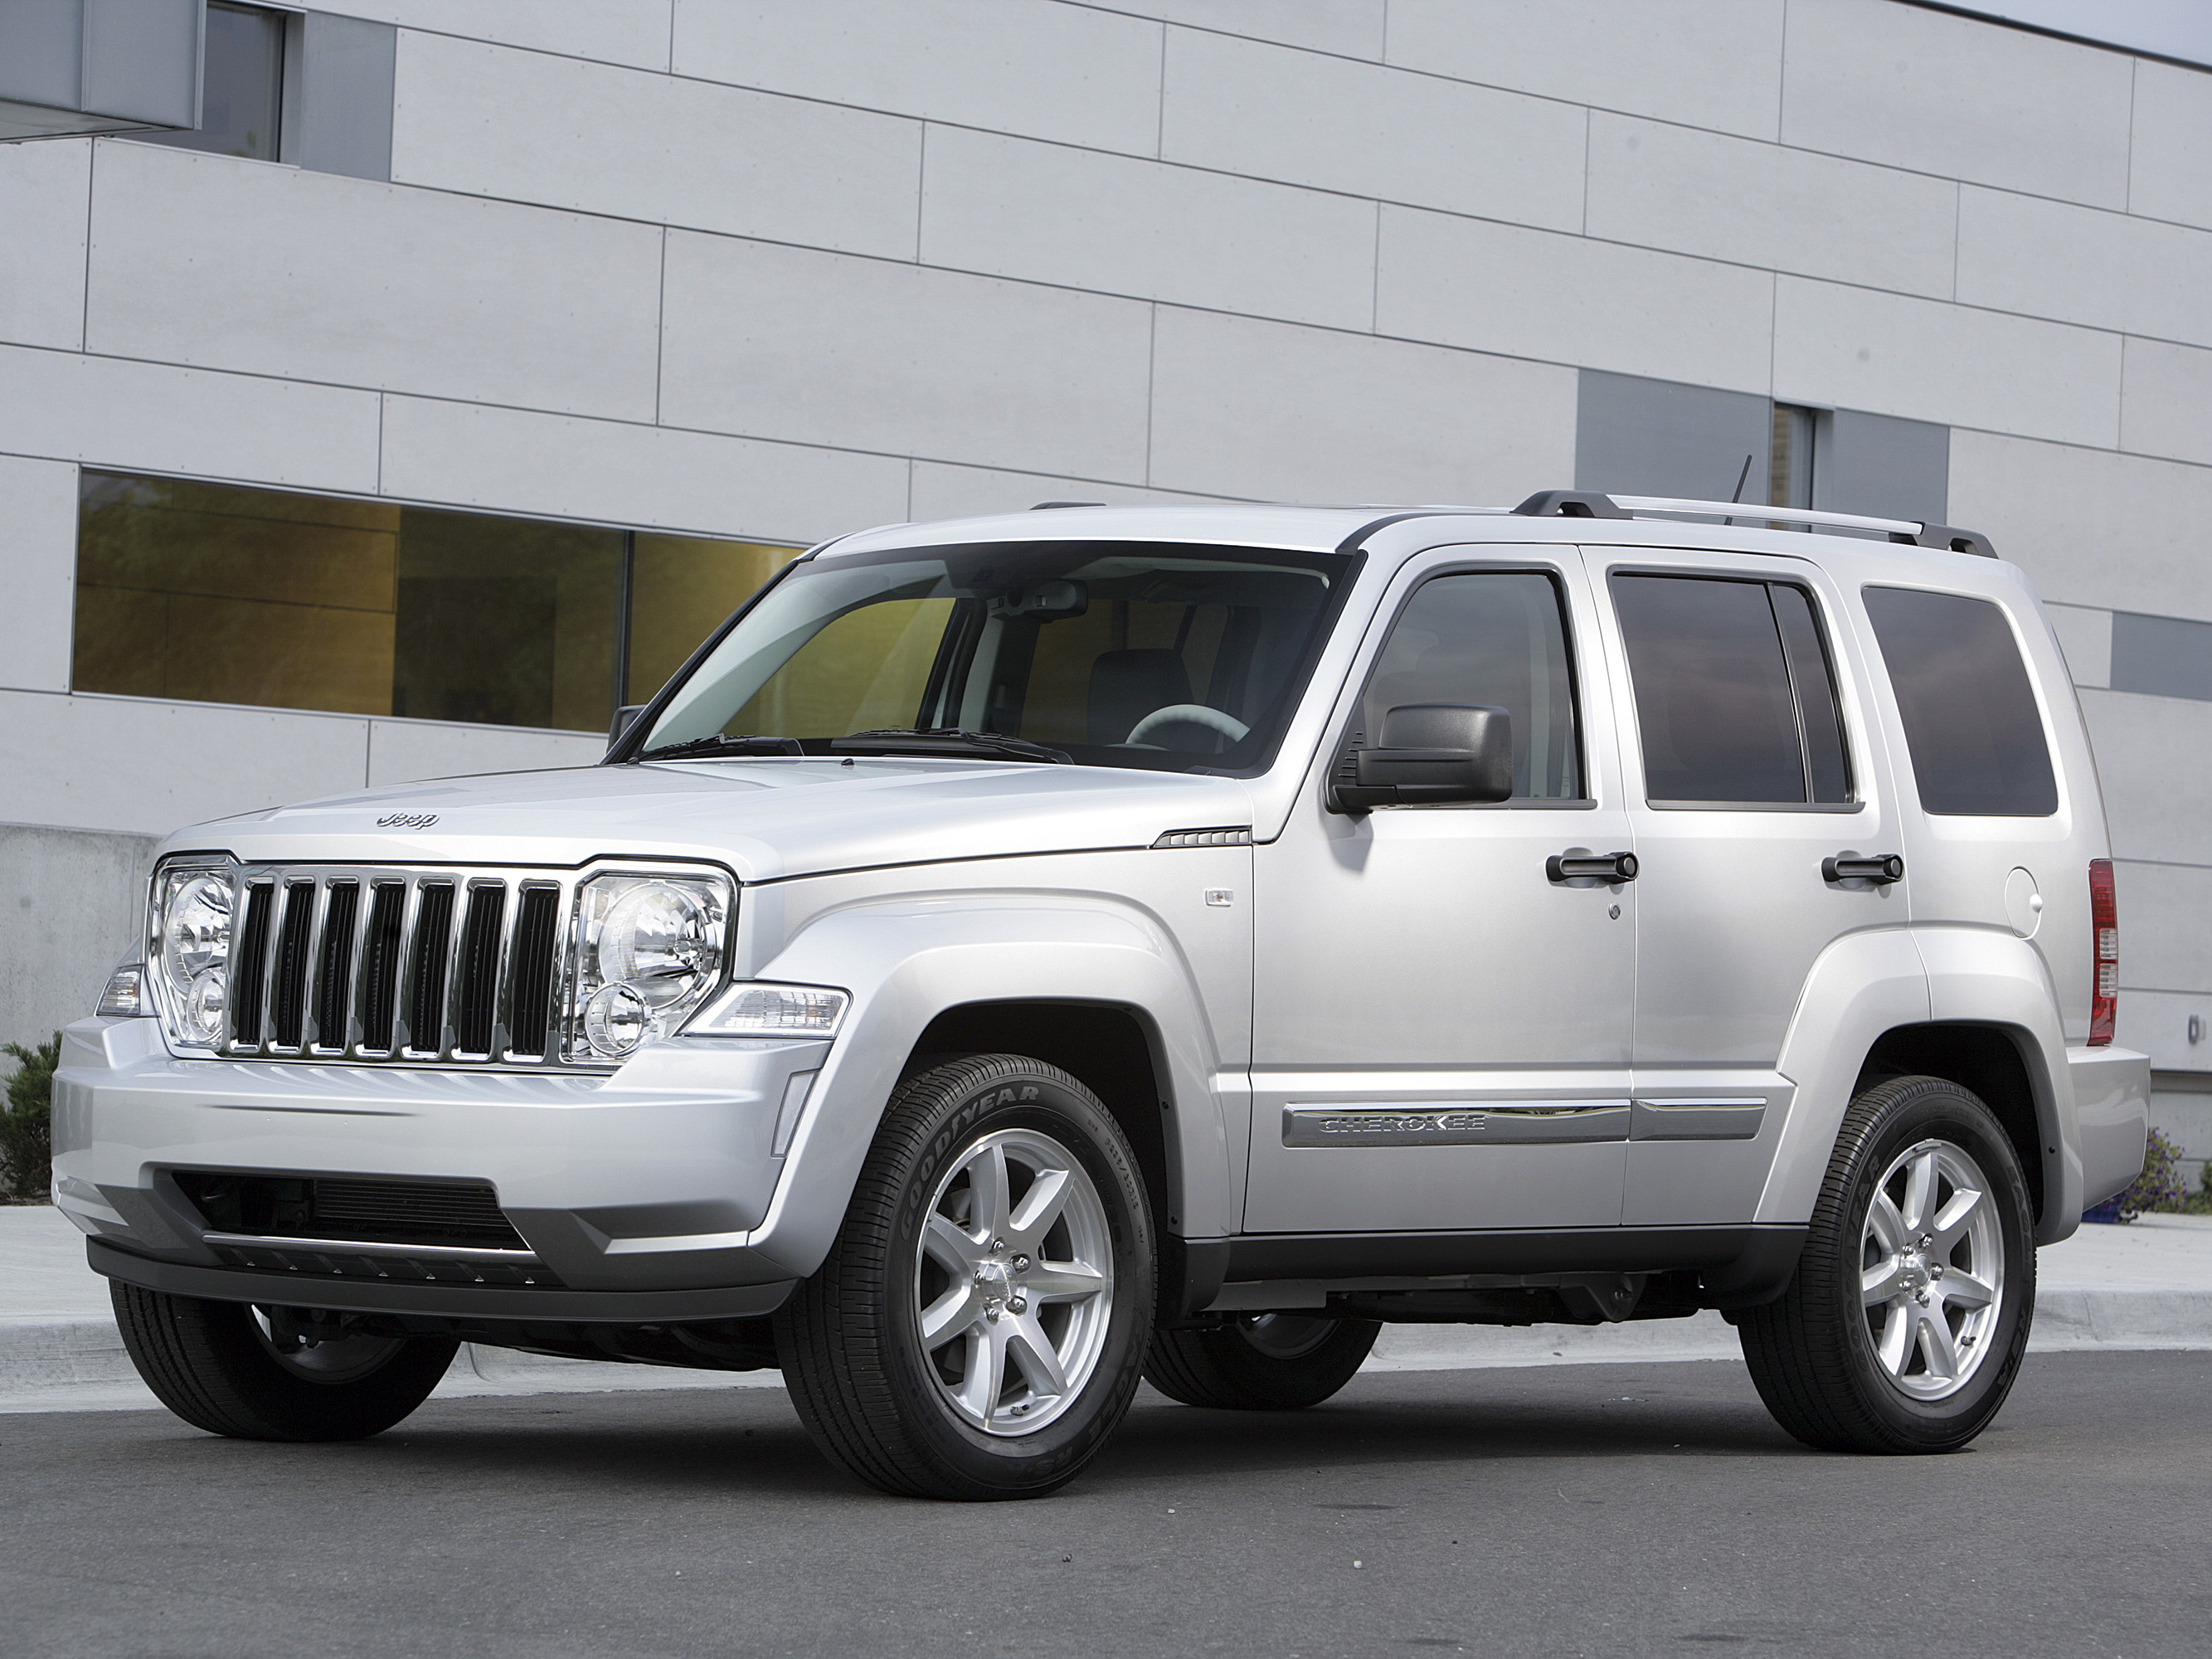 3dtuning of jeep liberty suv 2008 unique on line car configurator for more than. Black Bedroom Furniture Sets. Home Design Ideas